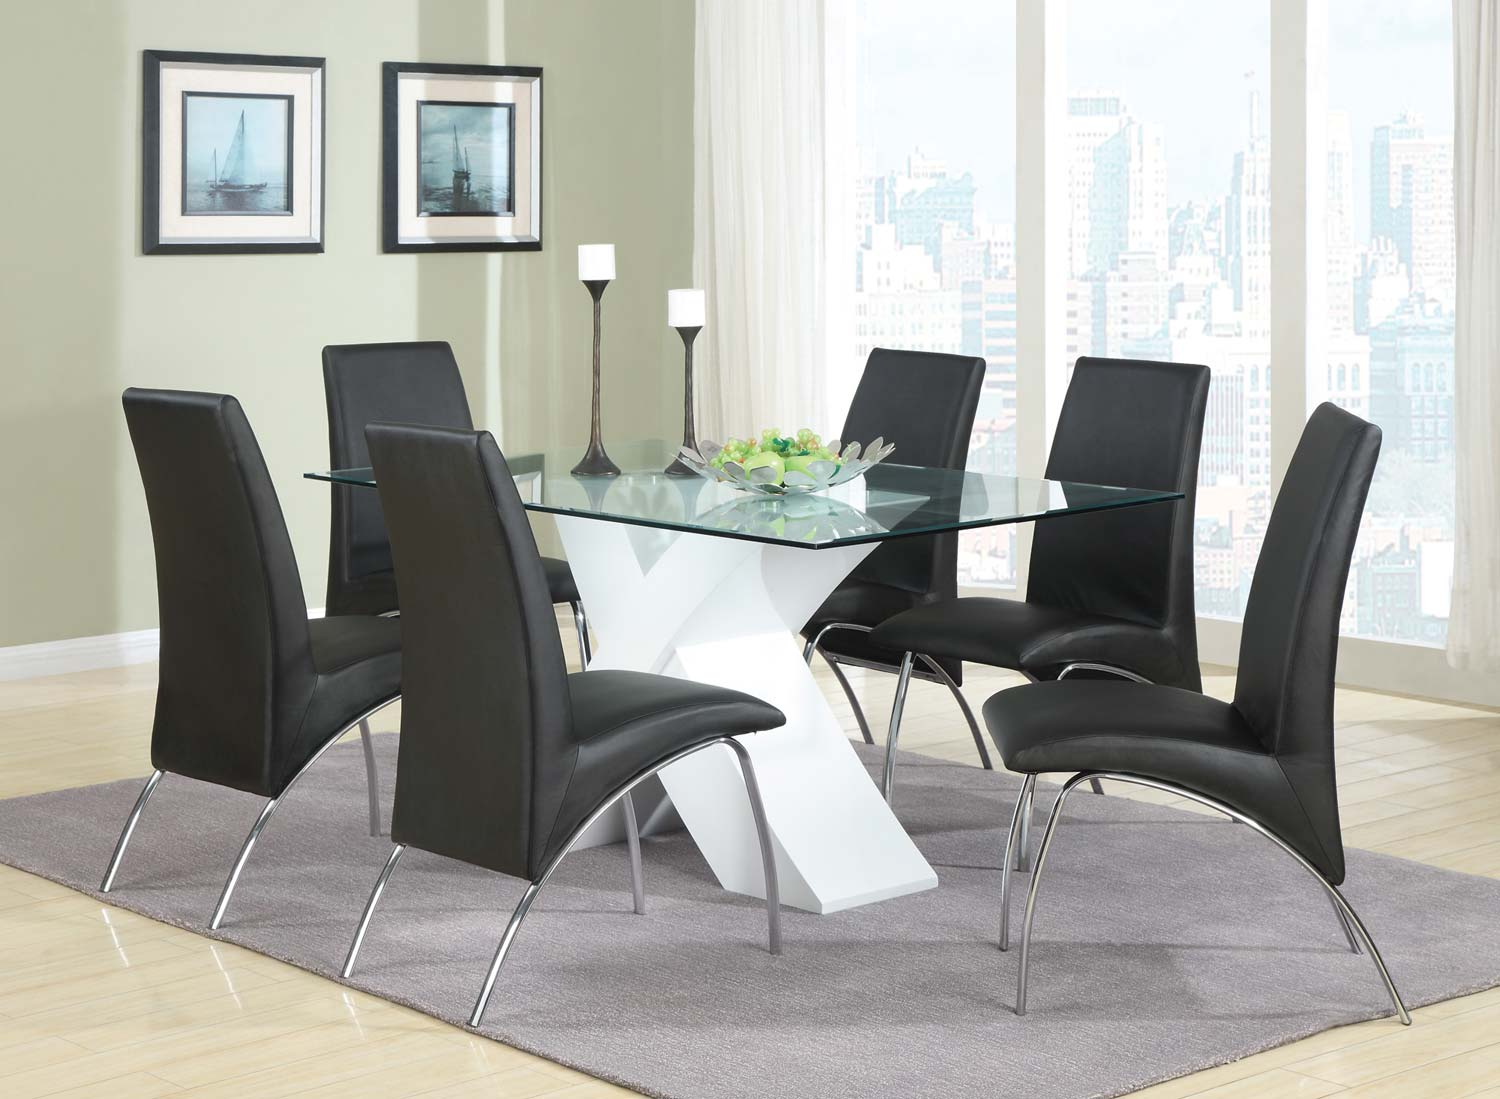 Coaster Ophelia X-Base Glass Dining Set - White